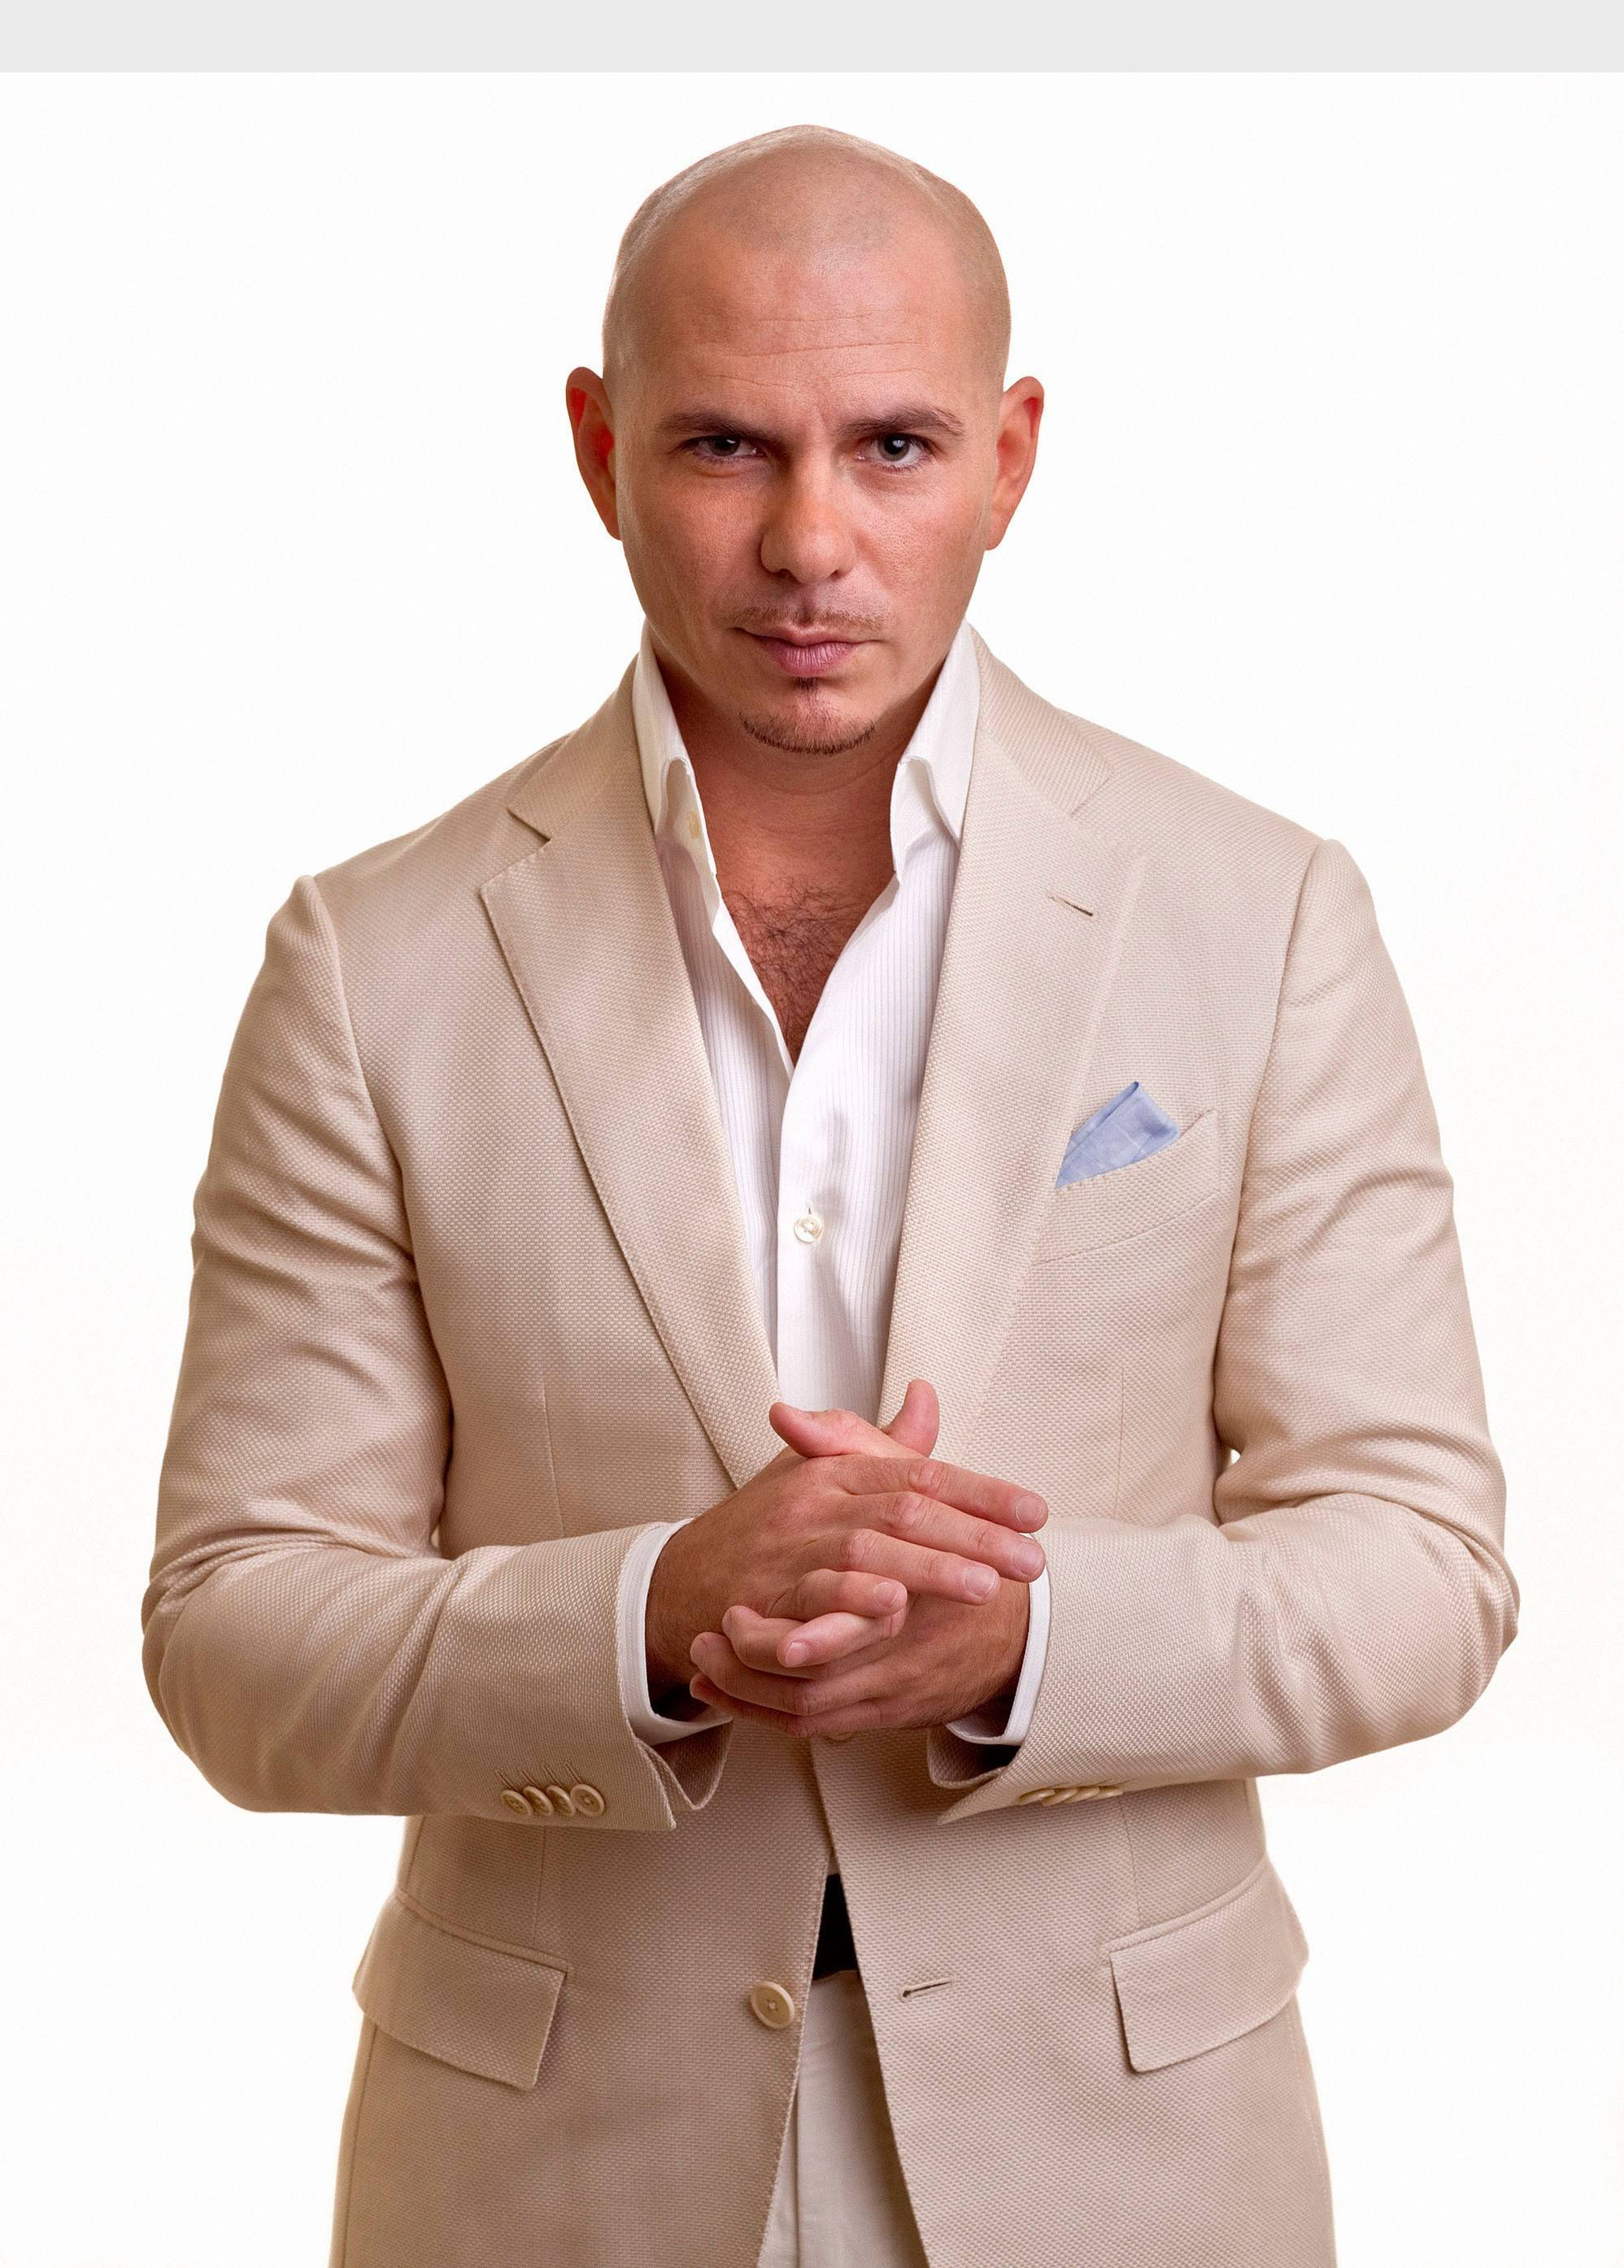 Rapper Pitbull will headline with Latin pop singer Enrique Iglesias on Friday, Oct. 3, at the Allstate Arena in Rosemont.